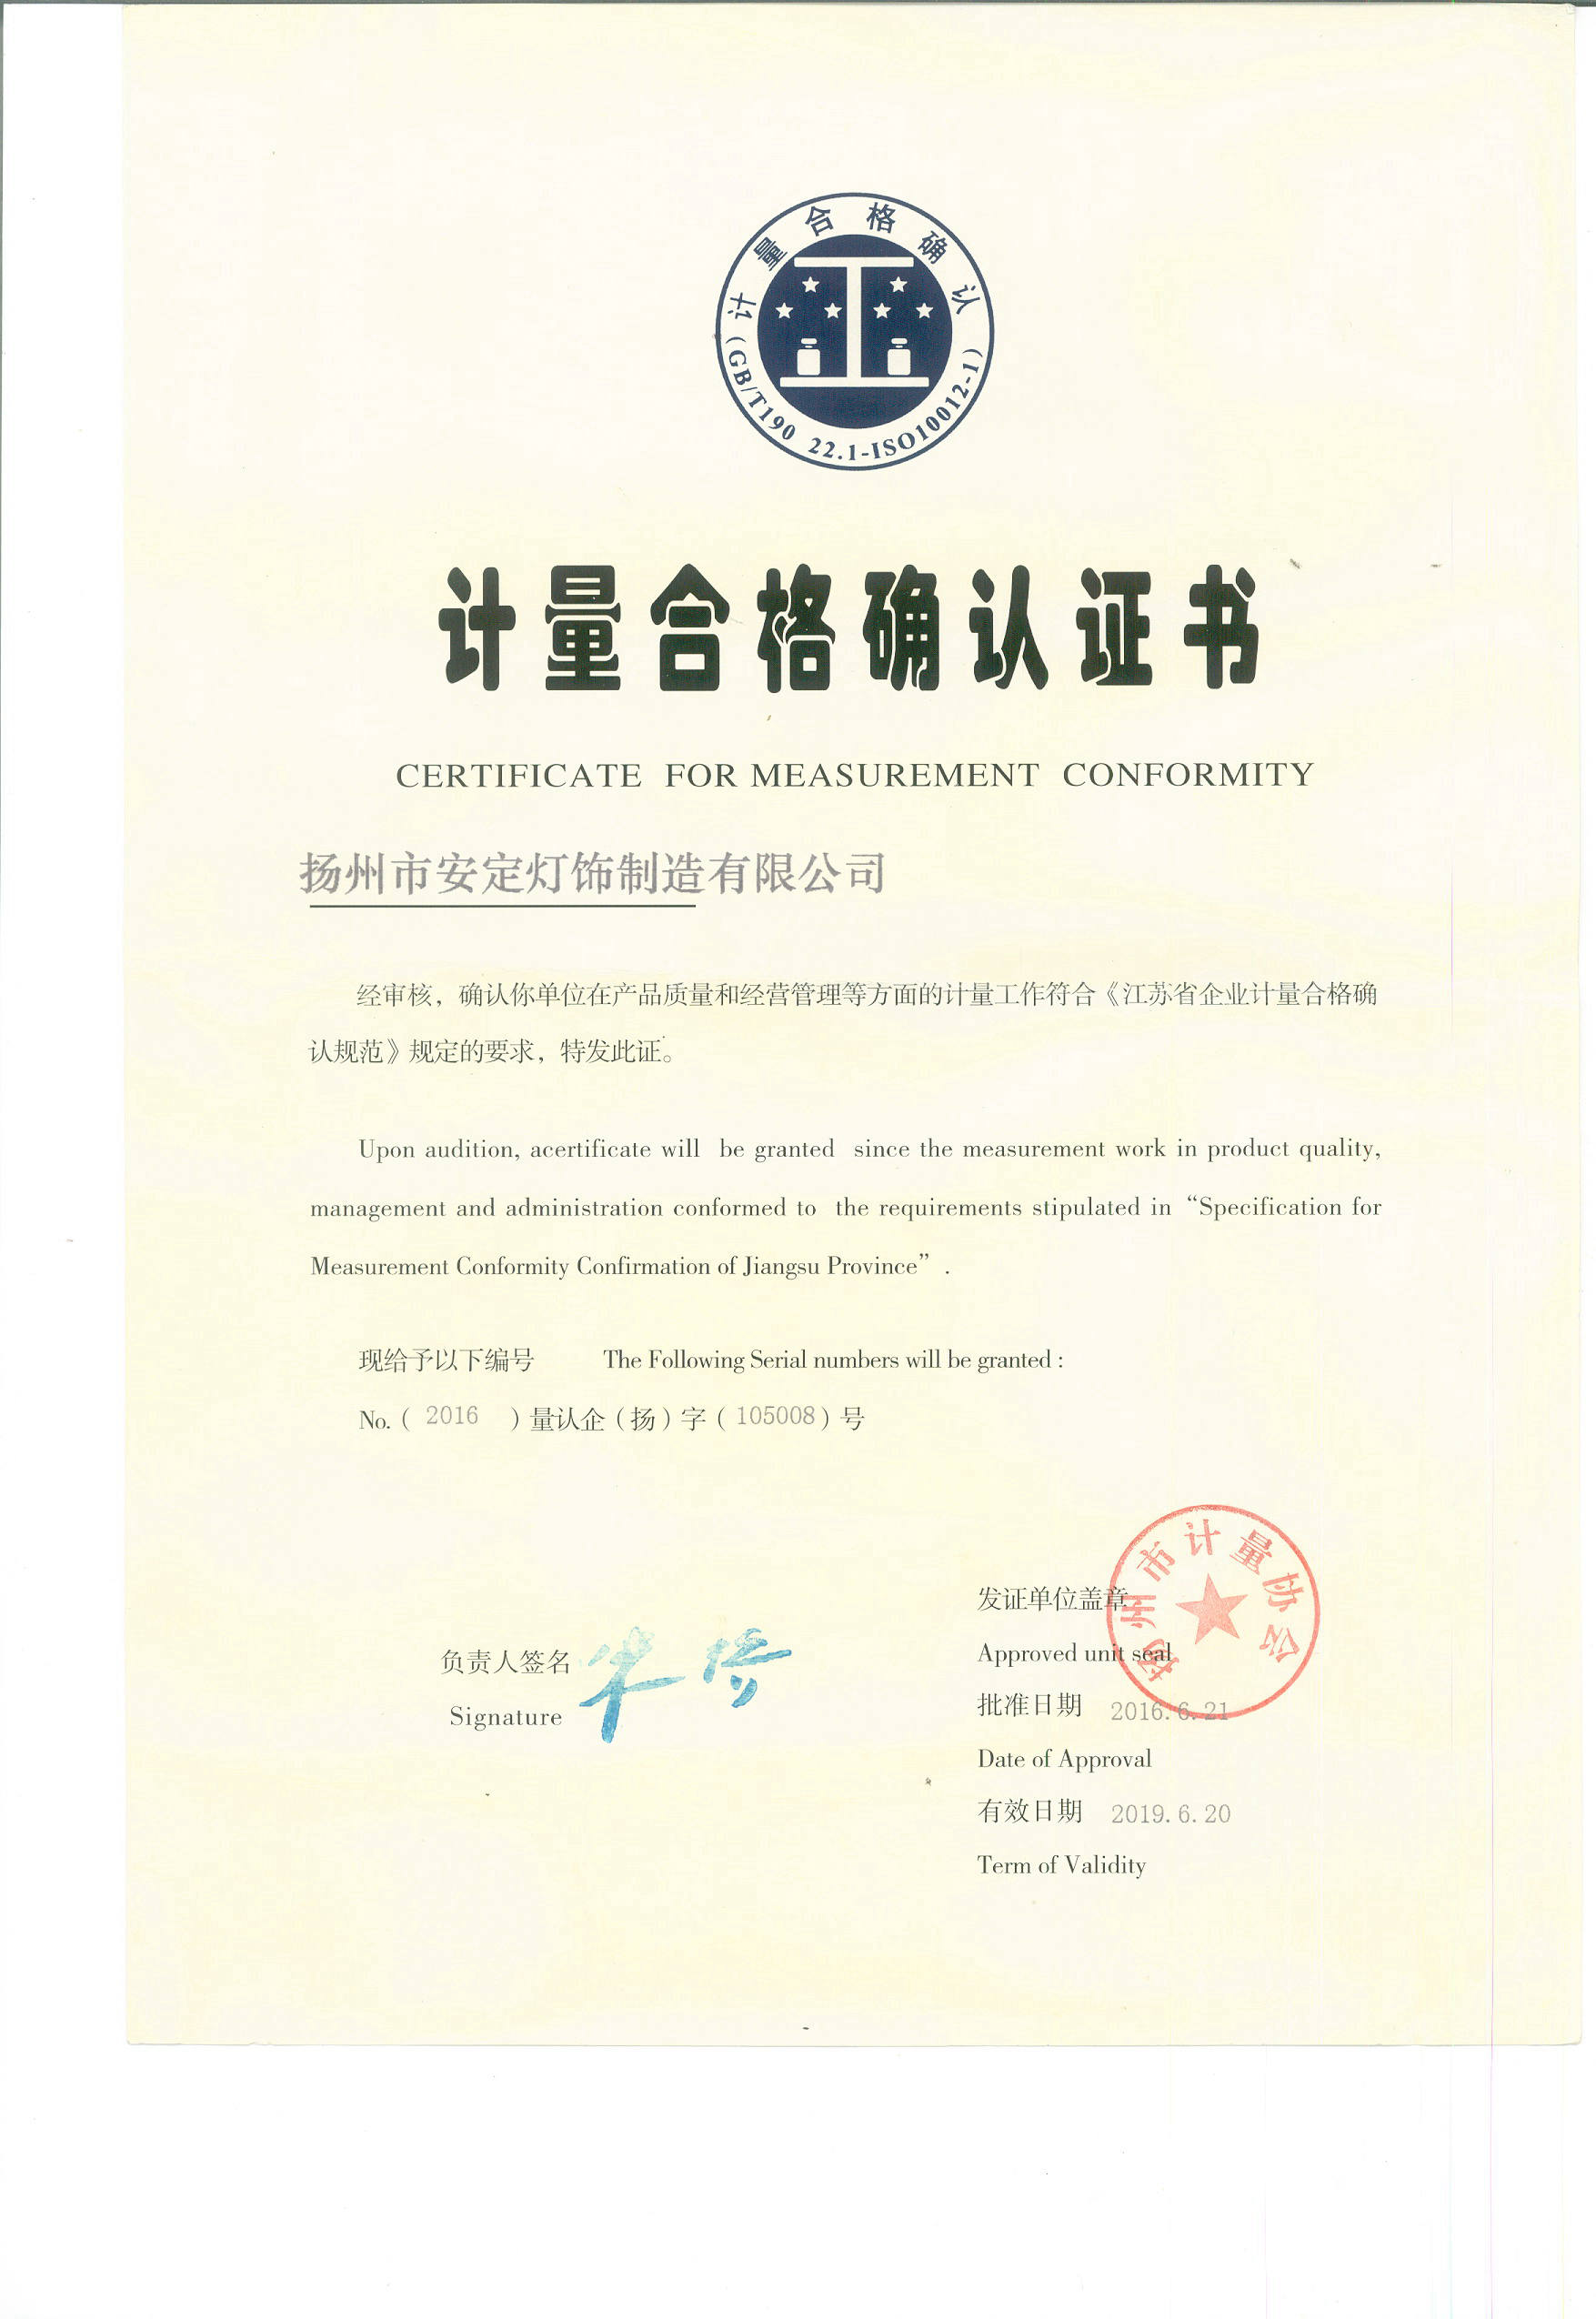 Qualified to confirm measurement certificate